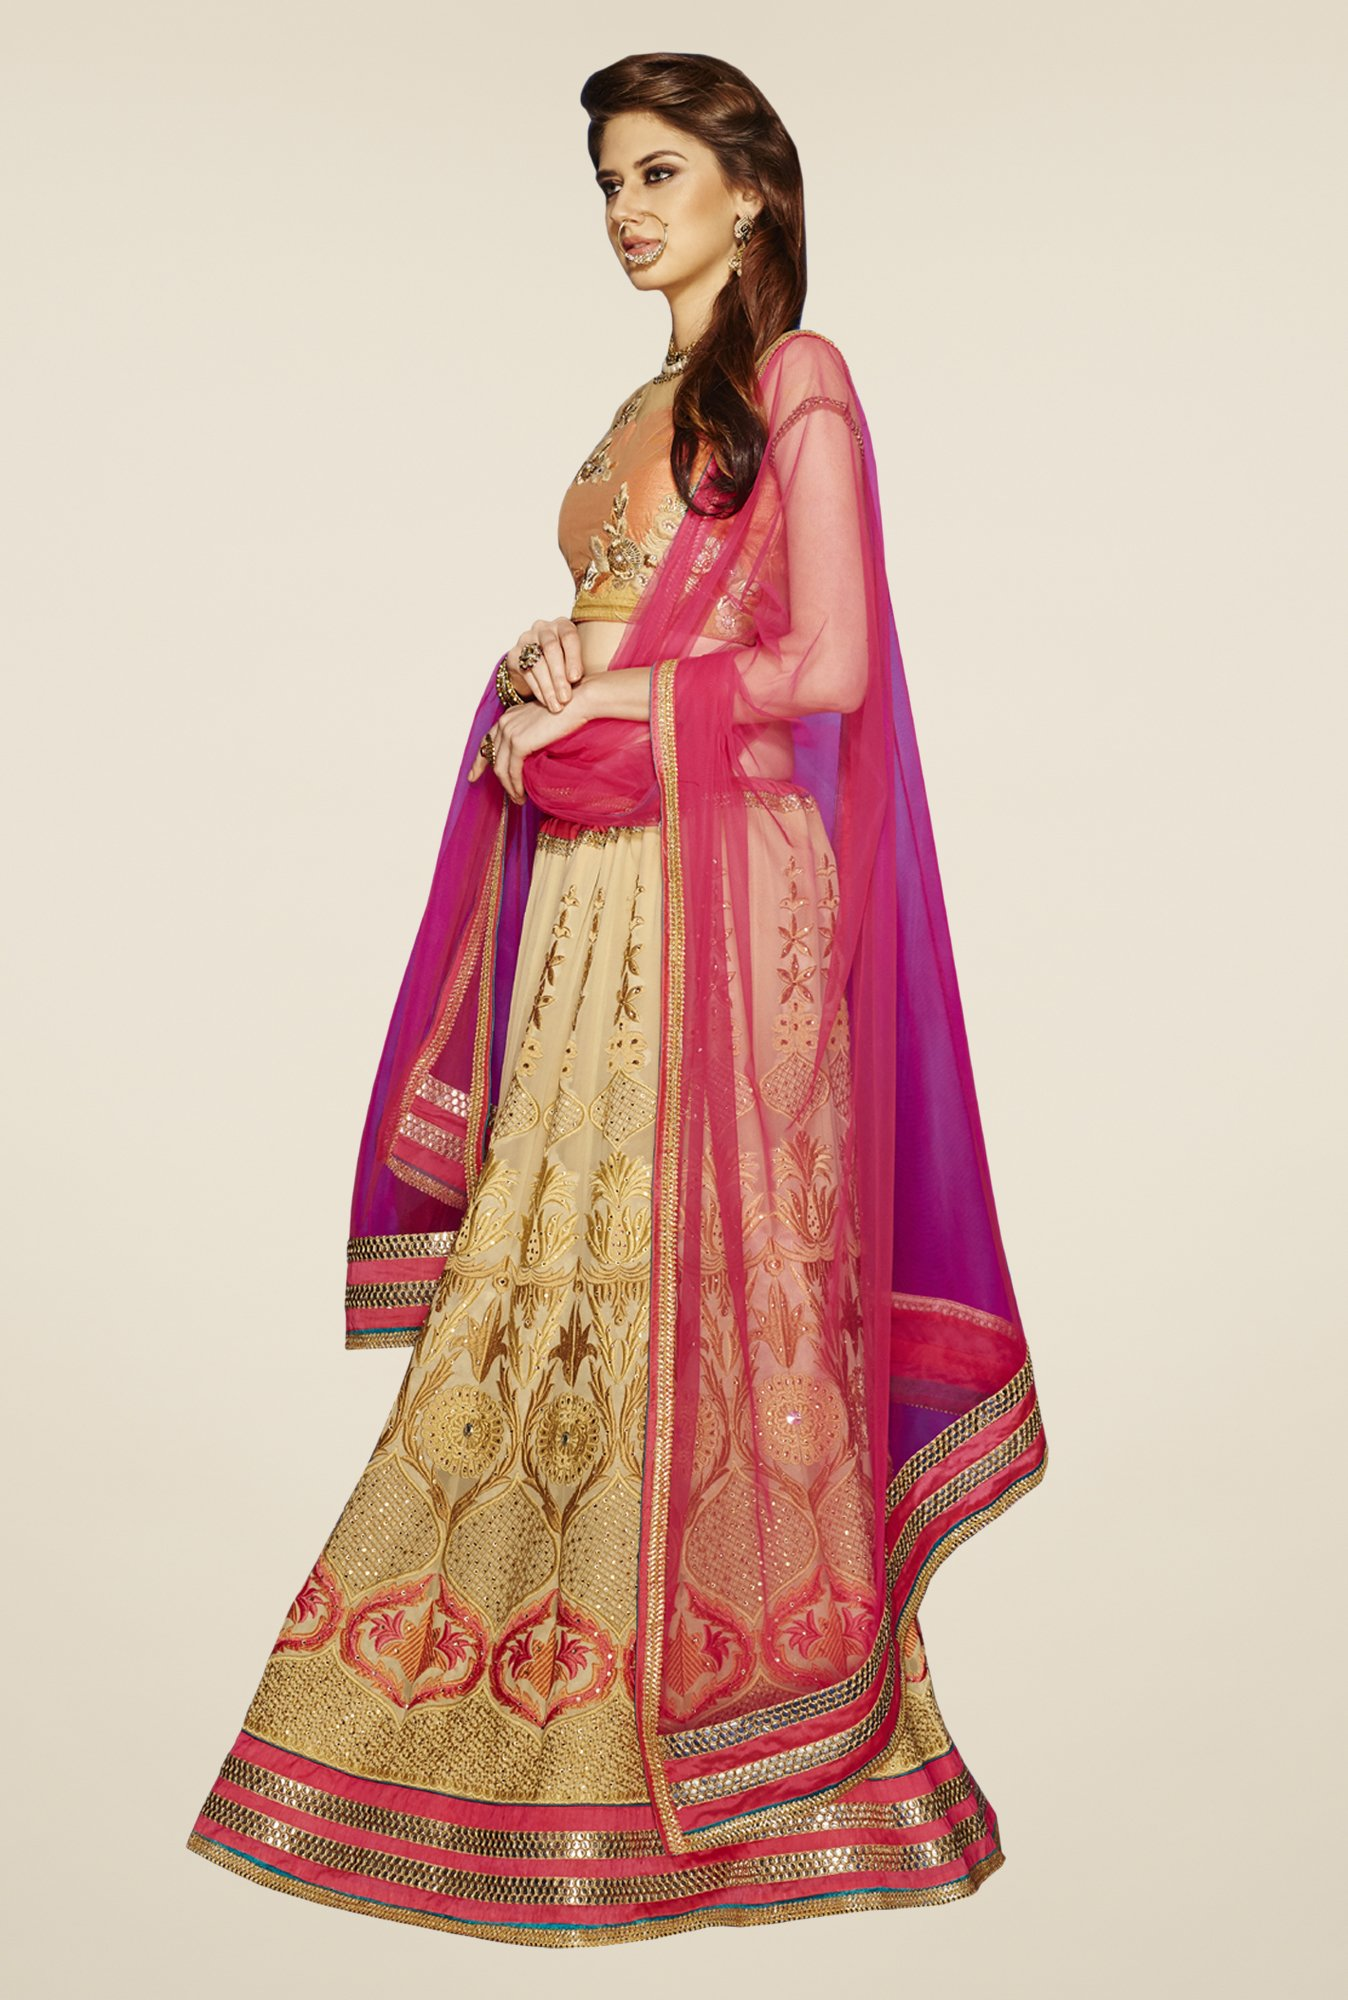 Occeanus Peach & Beige Embroidered Georgette Lehenga Set